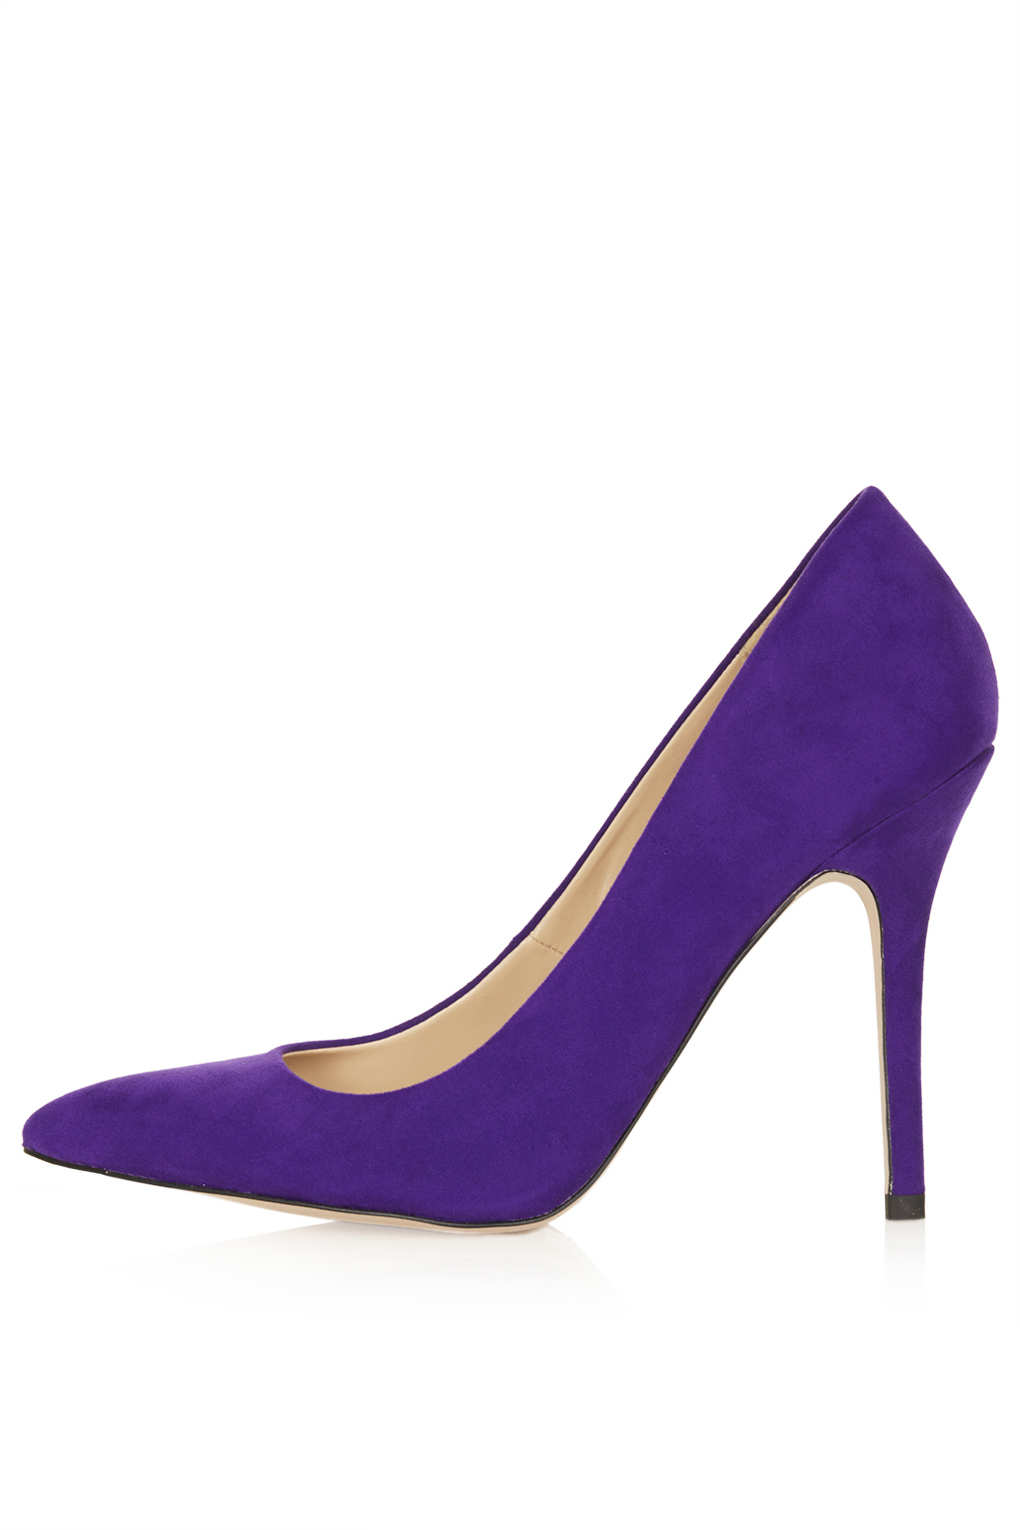 Topshop Simple Court Shoes in Purple | Lyst